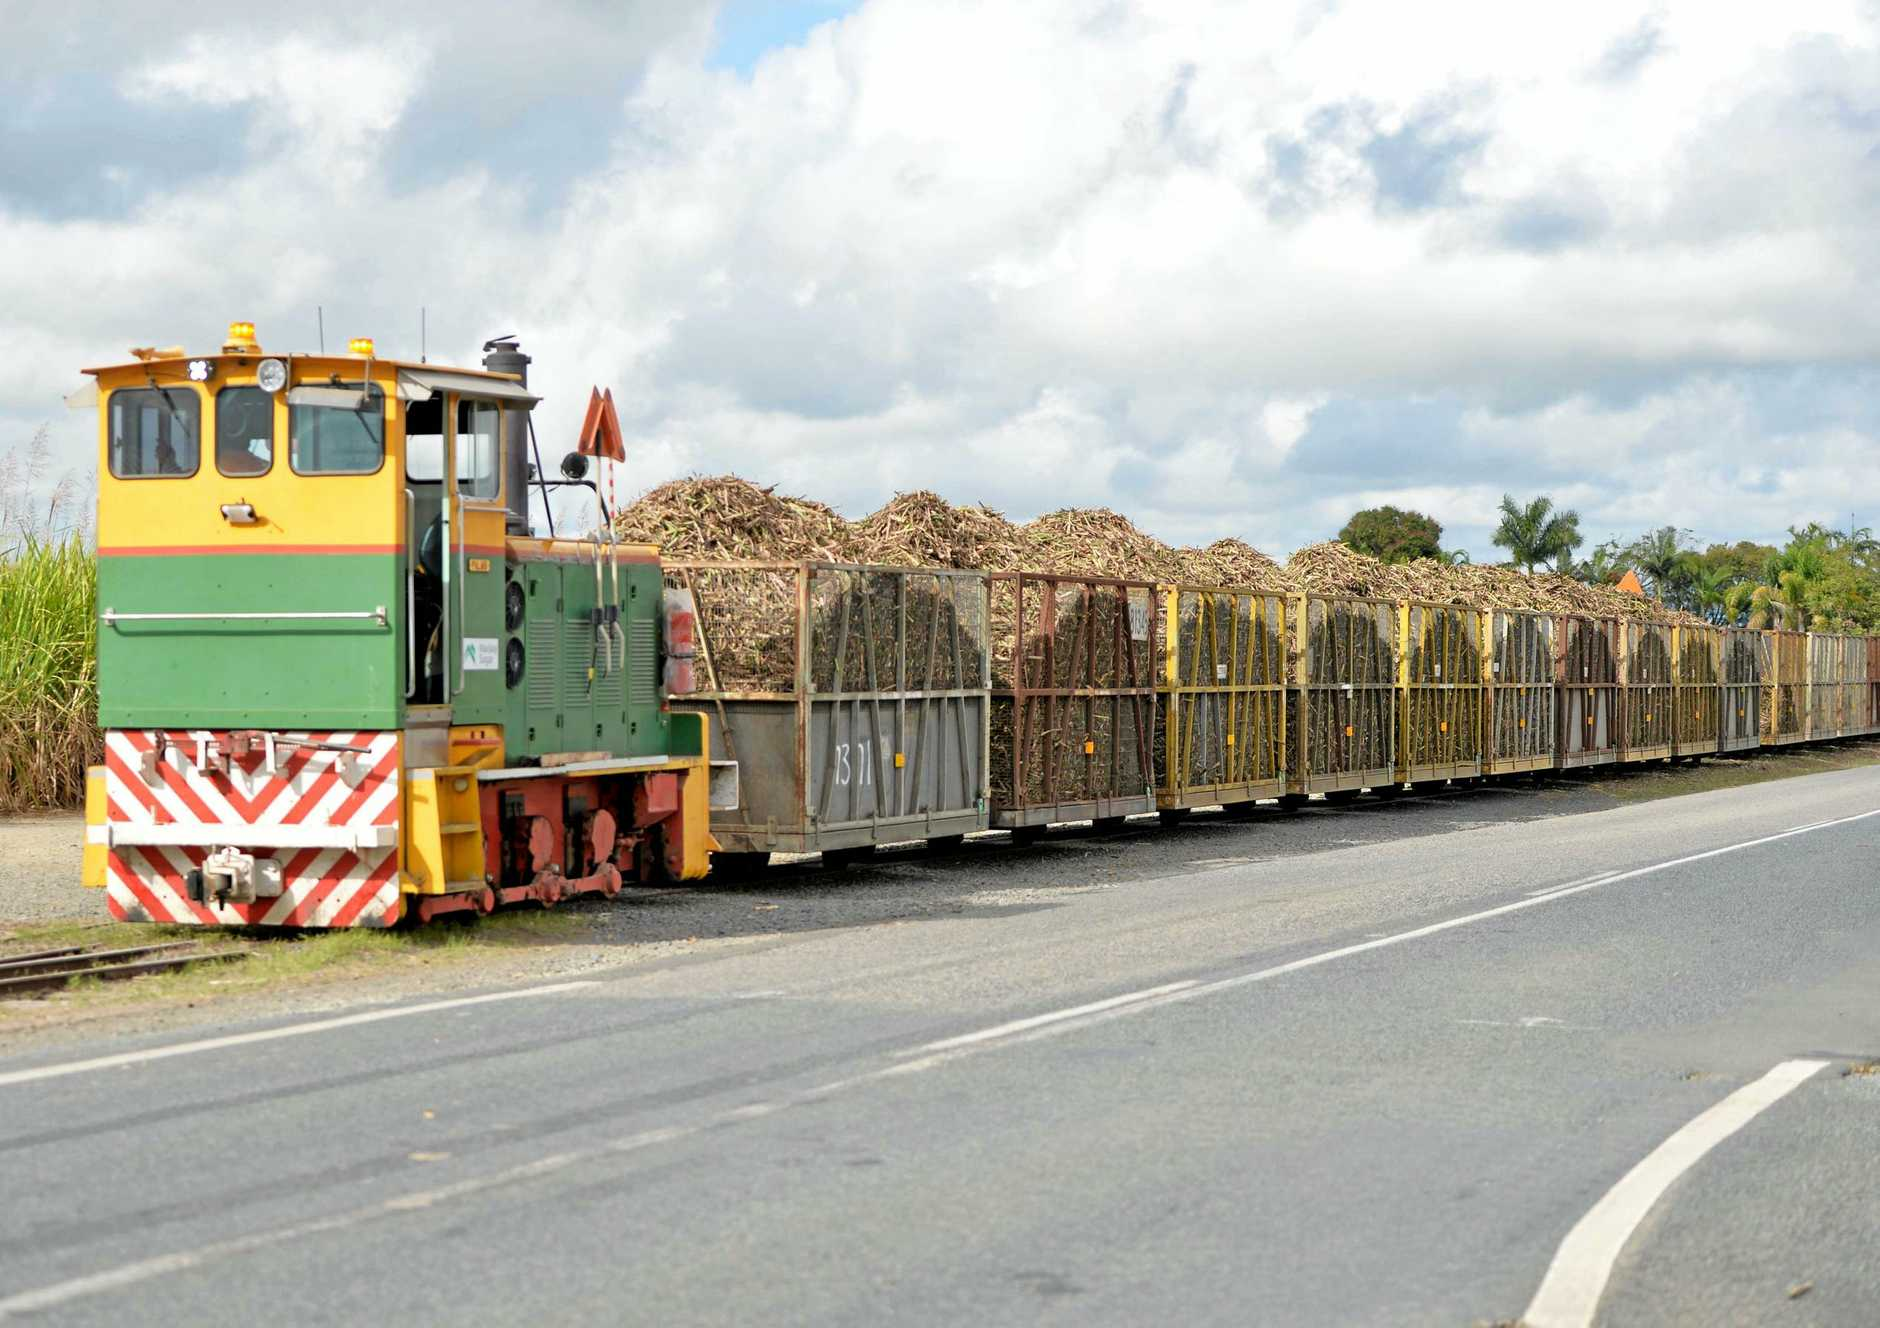 Residents are being urged to watch for cane trains and slow moving machinery during the crushing season.